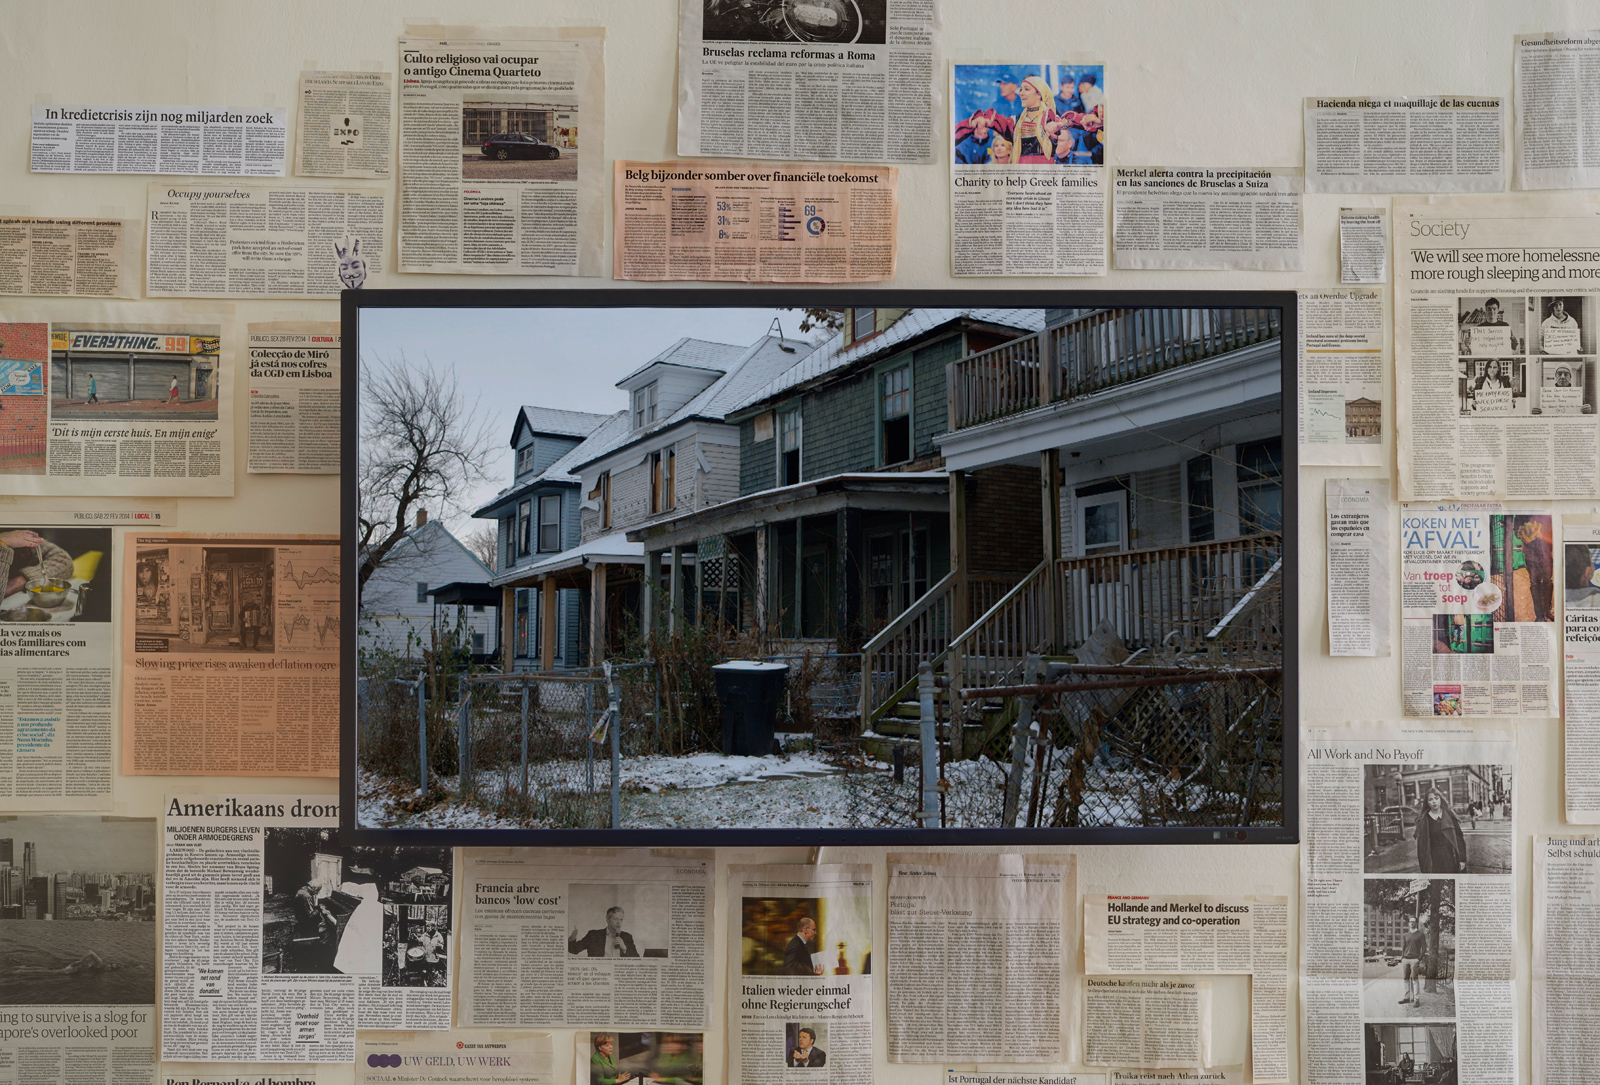 Fiona Tan, 'Ghost Dwelling II', Detroit. 2014.  Courtesy the artist and Frith Street Gallery, London.